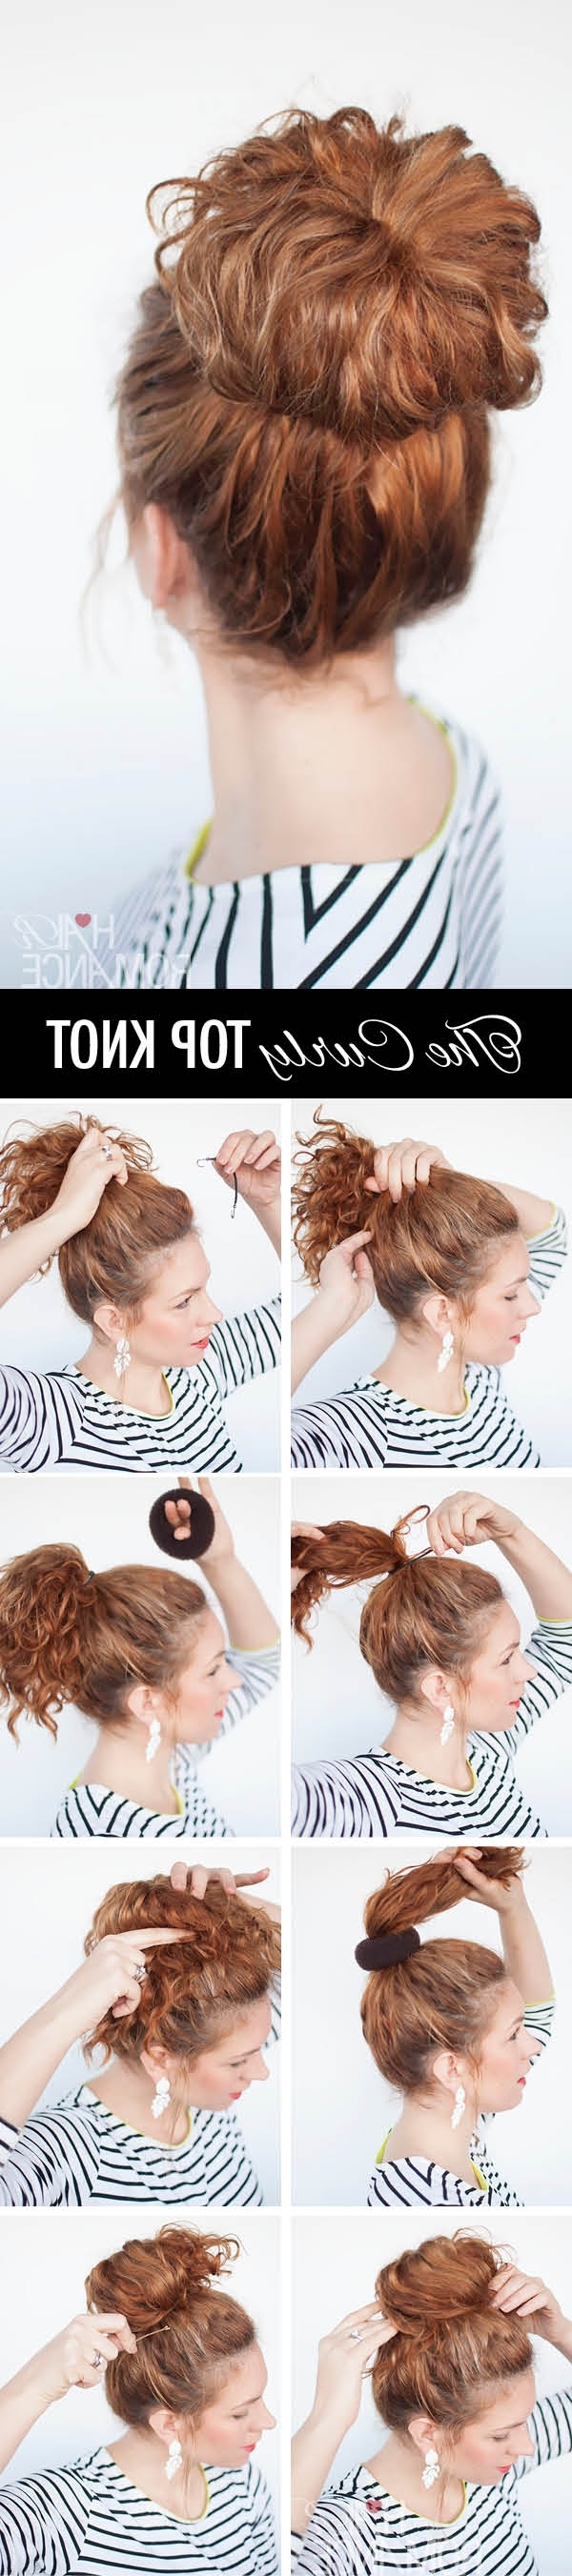 Curls Week – Curly Top Knot Hairstyle Tutorial – Hair Romance In Quick Updo Hairstyles For Curly Hair (View 6 of 15)